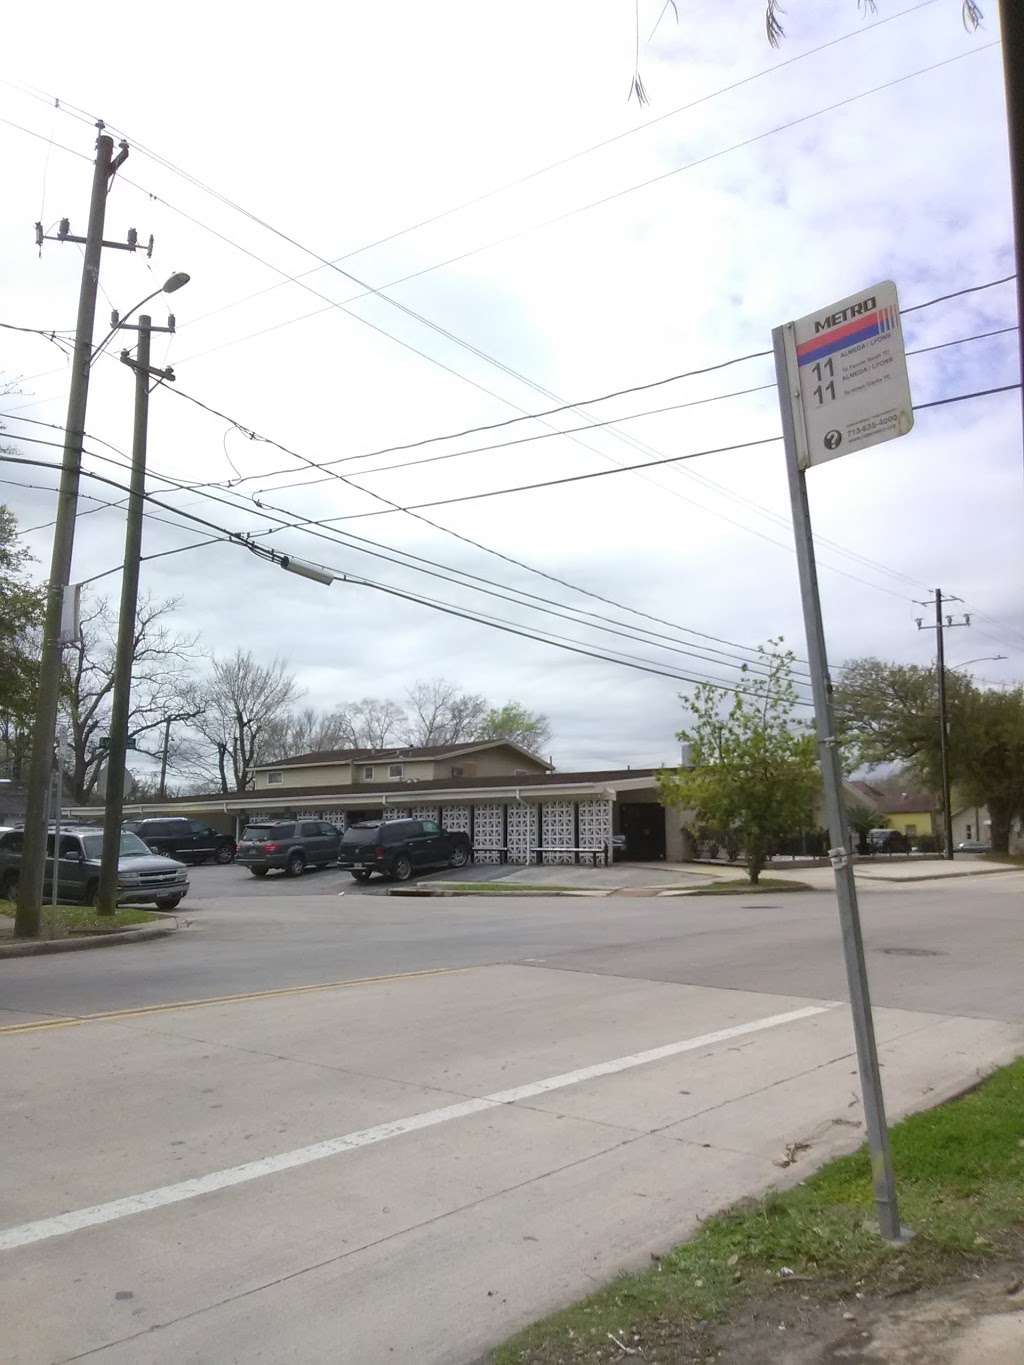 Ross Mortuary Inc. - funeral home  | Photo 3 of 7 | Address: 3618 Lyons Ave, Houston, TX 77020, USA | Phone: (713) 223-8071